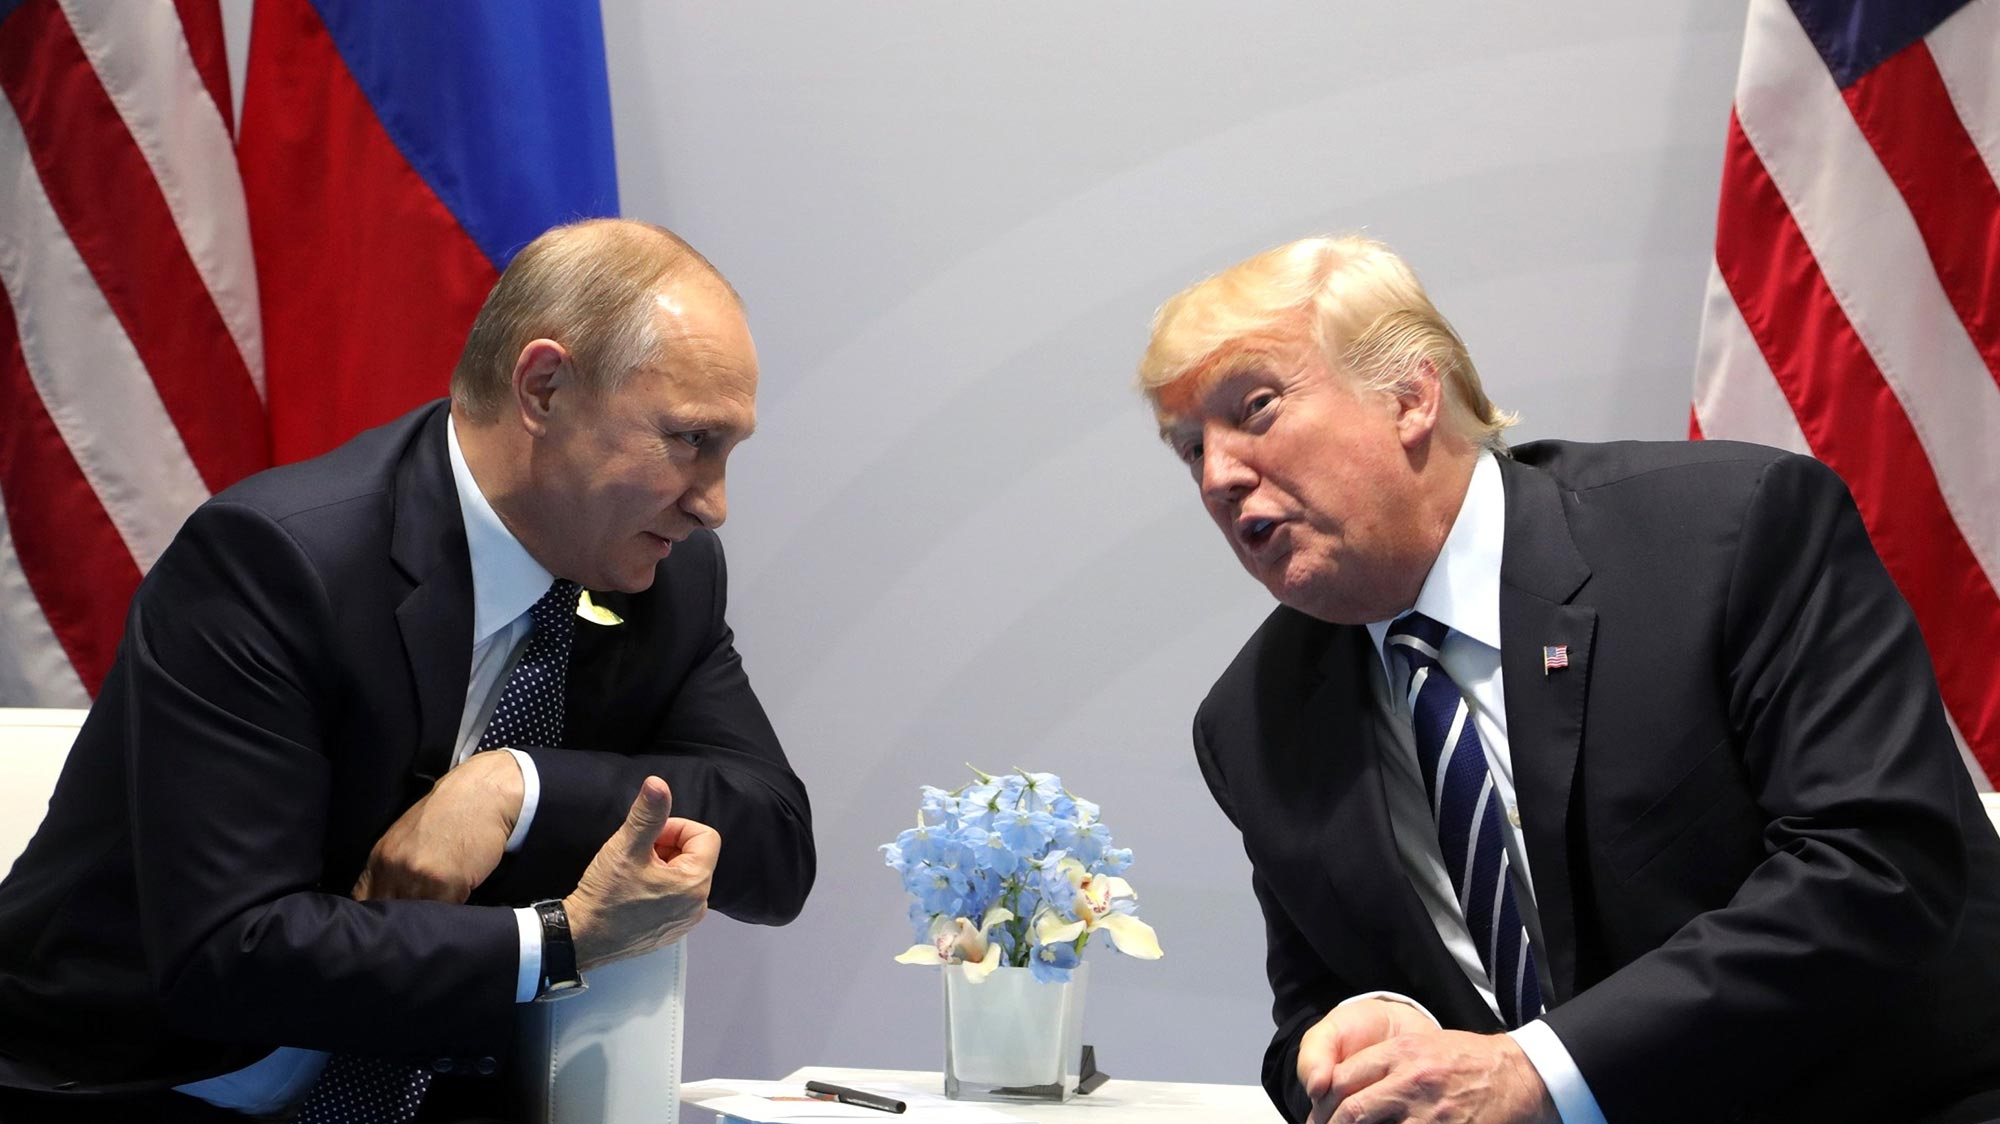 Trump pressed Putin over election interference for 40 minutes: report